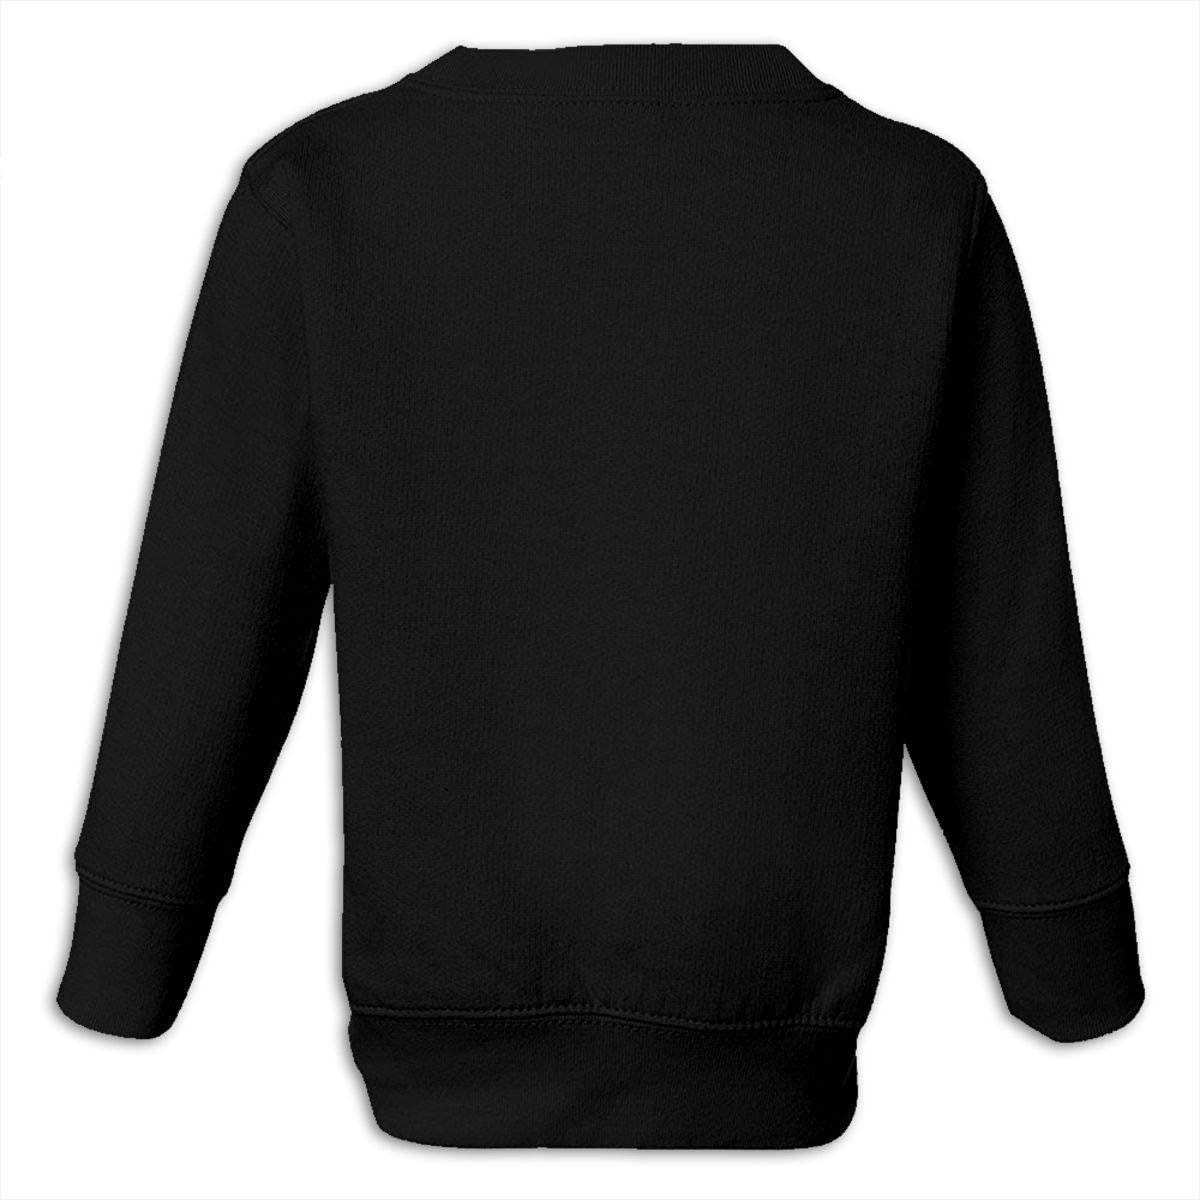 wudici Scooter Girl Boys Girls Pullover Sweaters Crewneck Sweatshirts Clothes for 2-6 Years Old Children